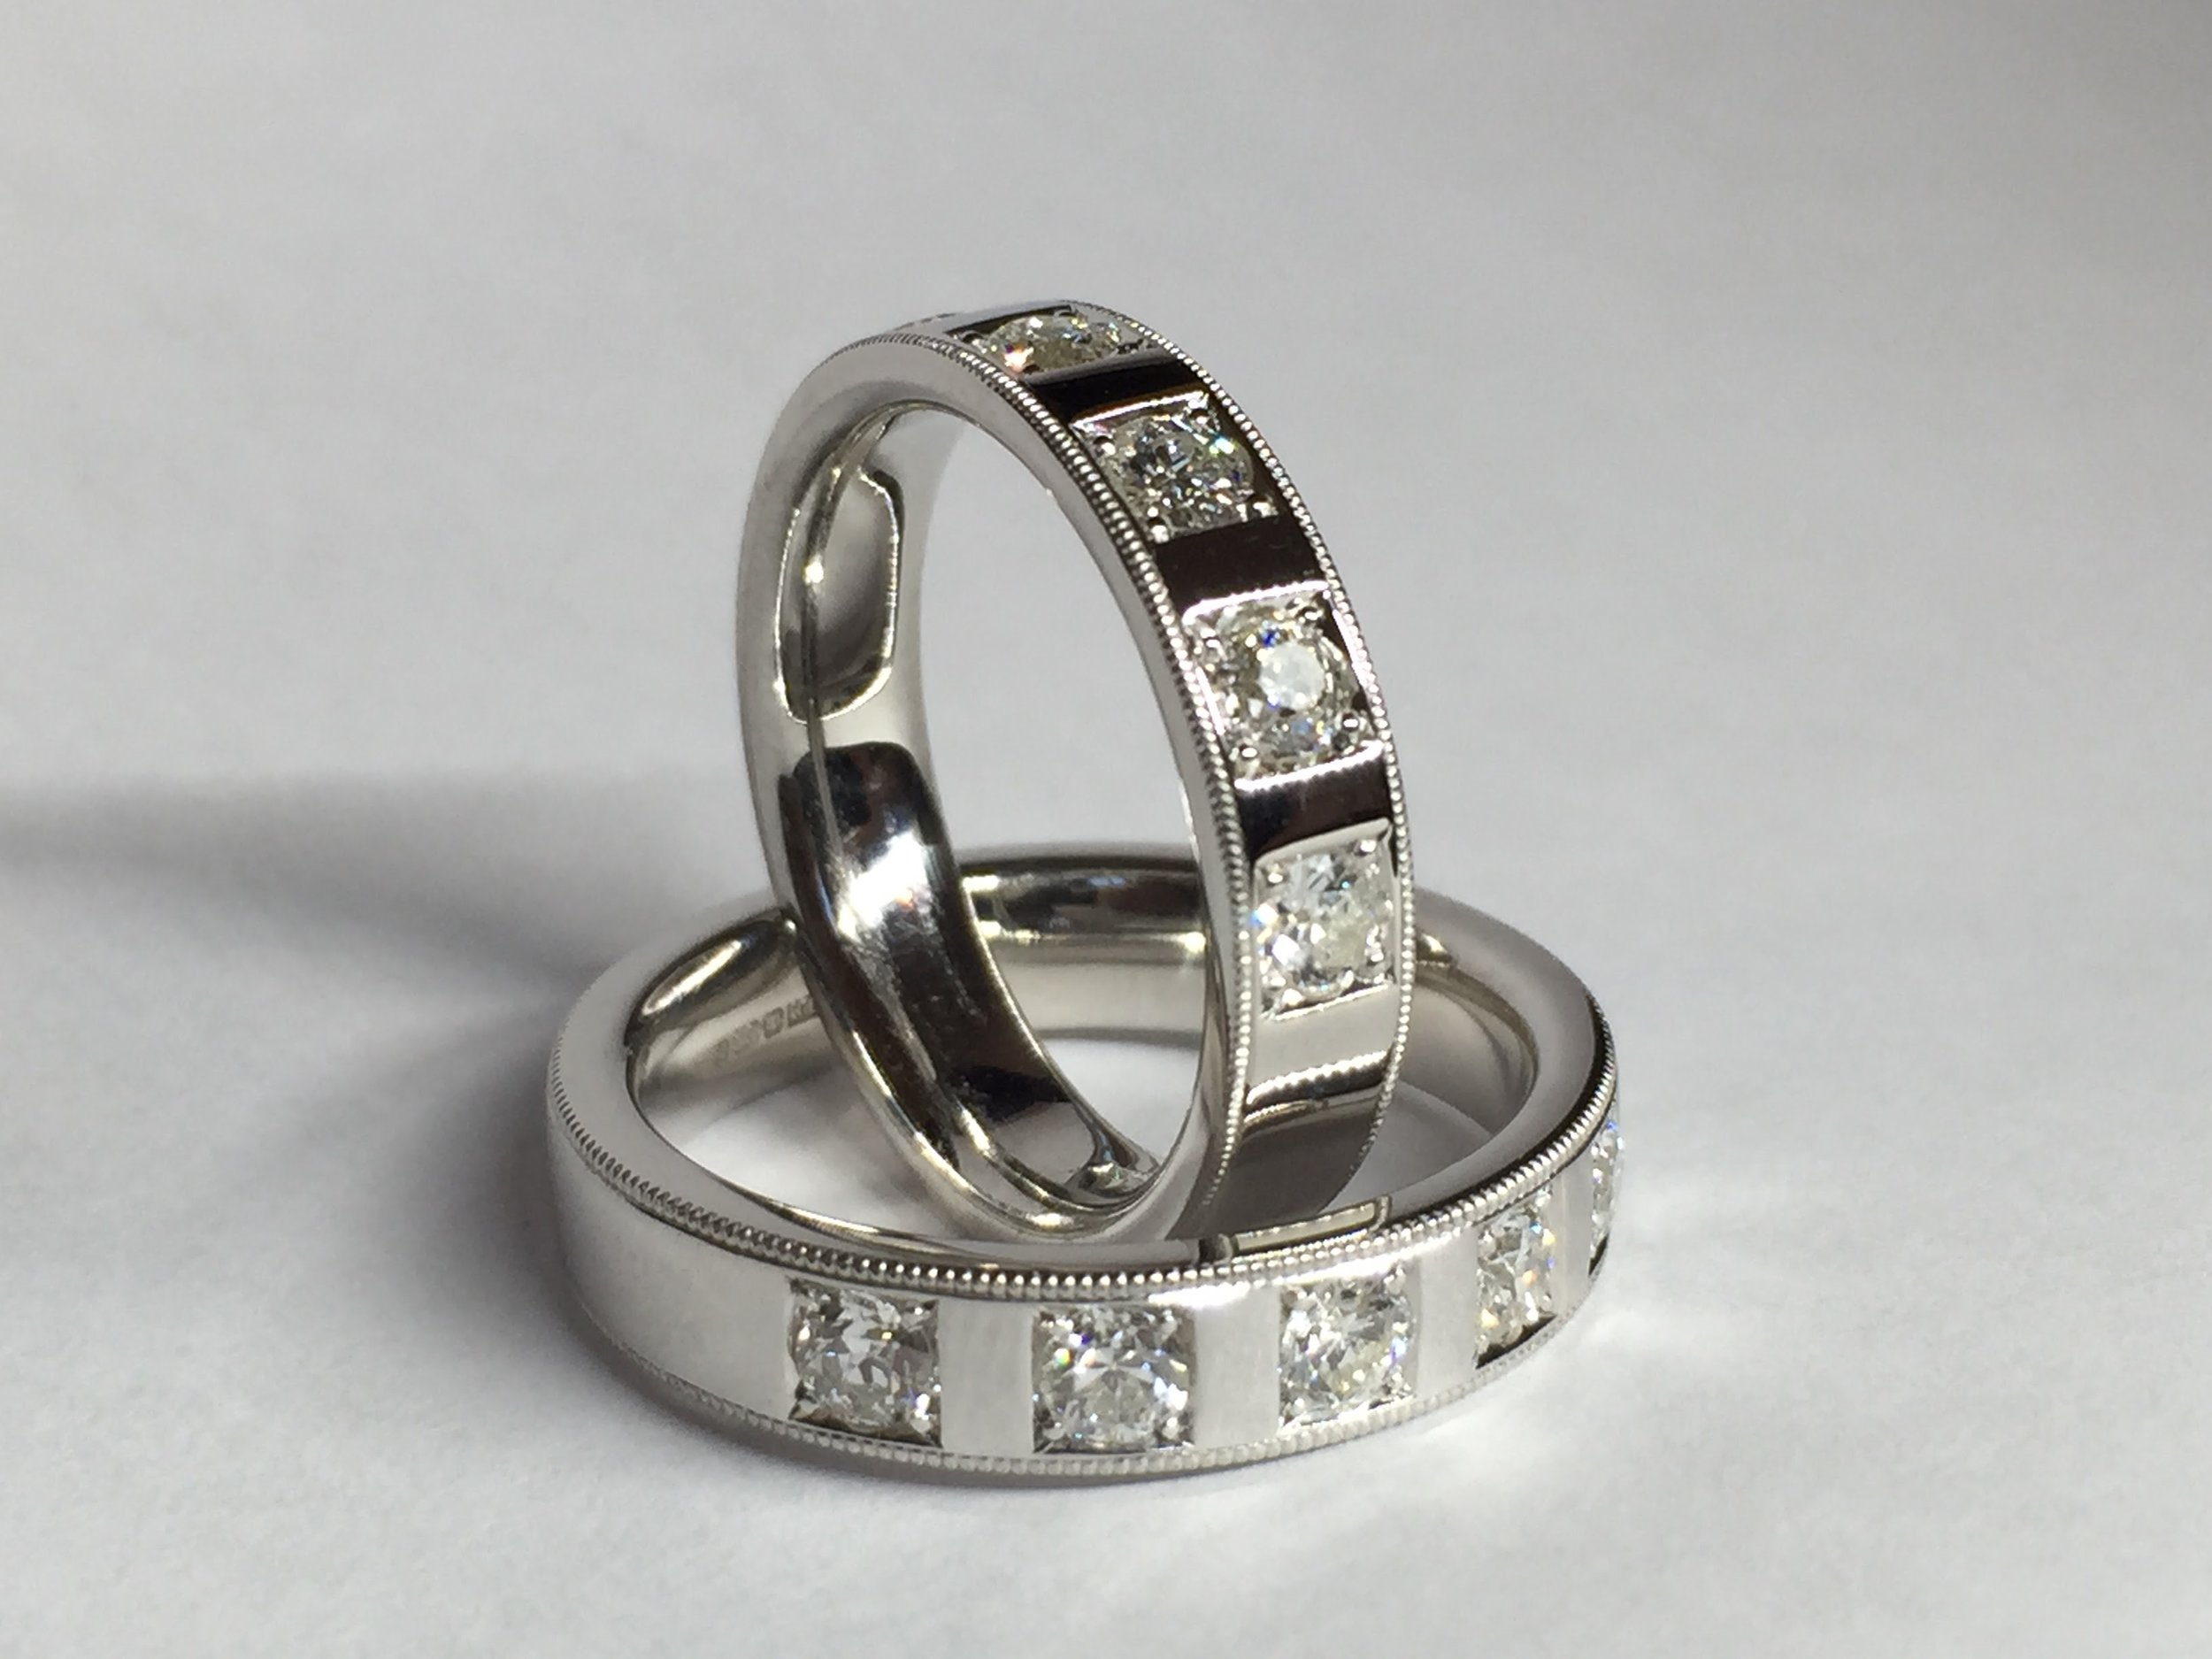 Copy of Matching set of wedding rings made with customers old cut diamonds. Grain set with millegrain edge decoration. Made in Chichester, England.